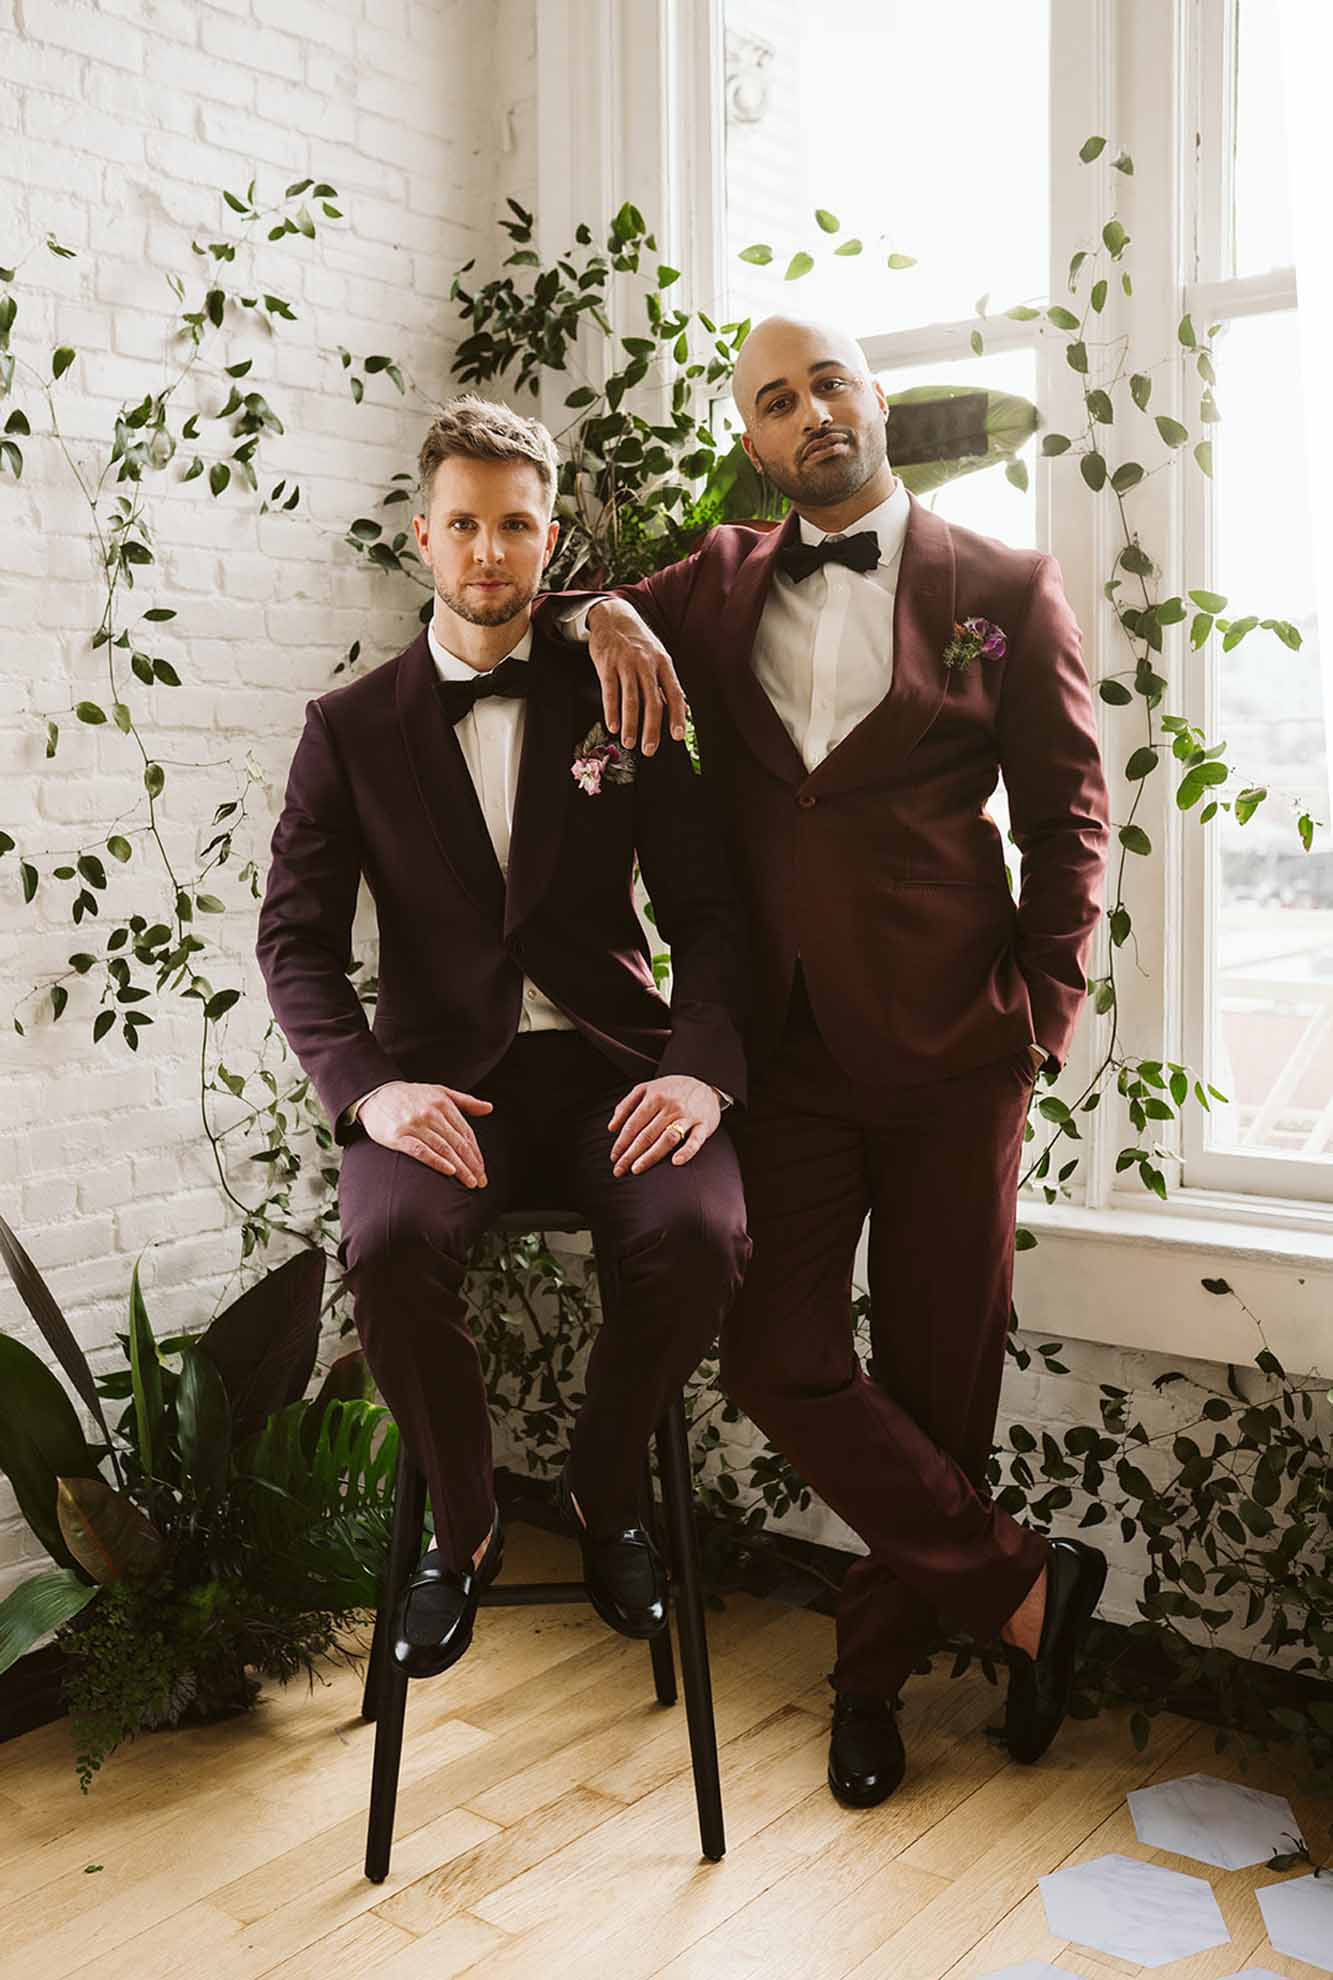 Rachel Brookstein Portland Oregon USA gay two grooms MR & MR wedding elopement Dancing With Them magazine